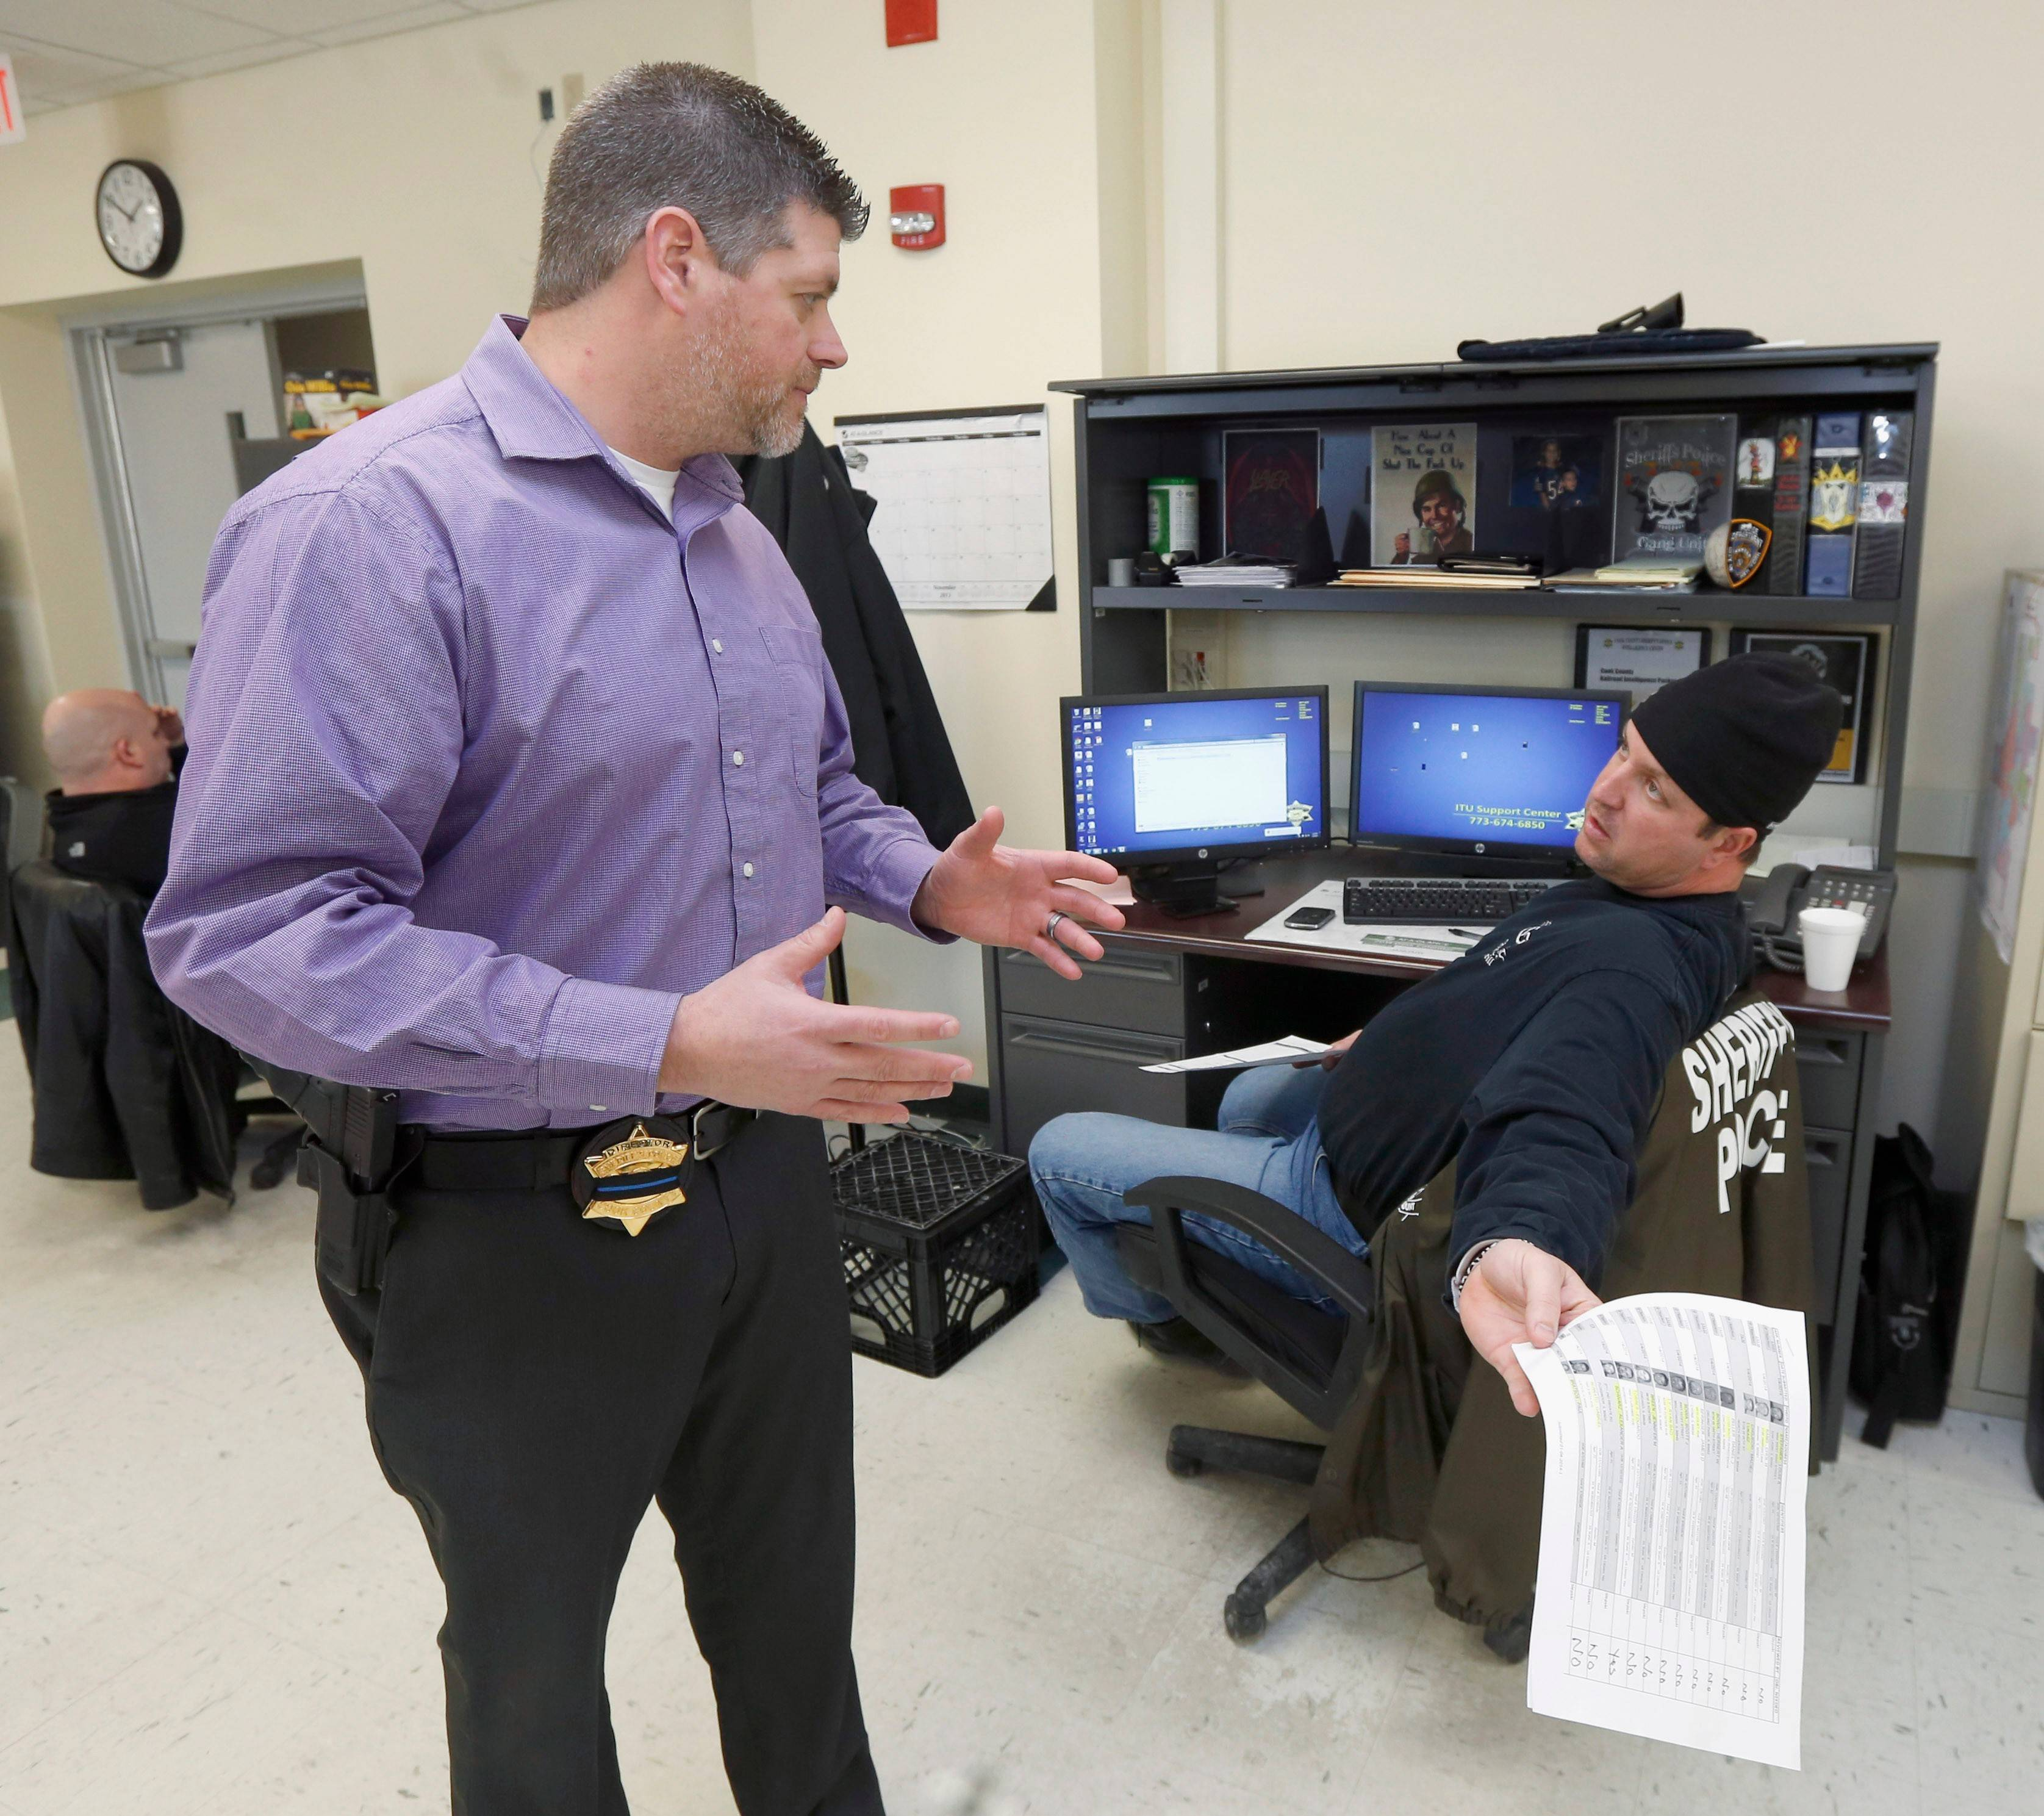 John Blair, left, executive director of the Cook County Sheriff's Office Intelligence Center, consults with Officer John Slepski about a firearms background check Slepski is performing at the center in Chicago.